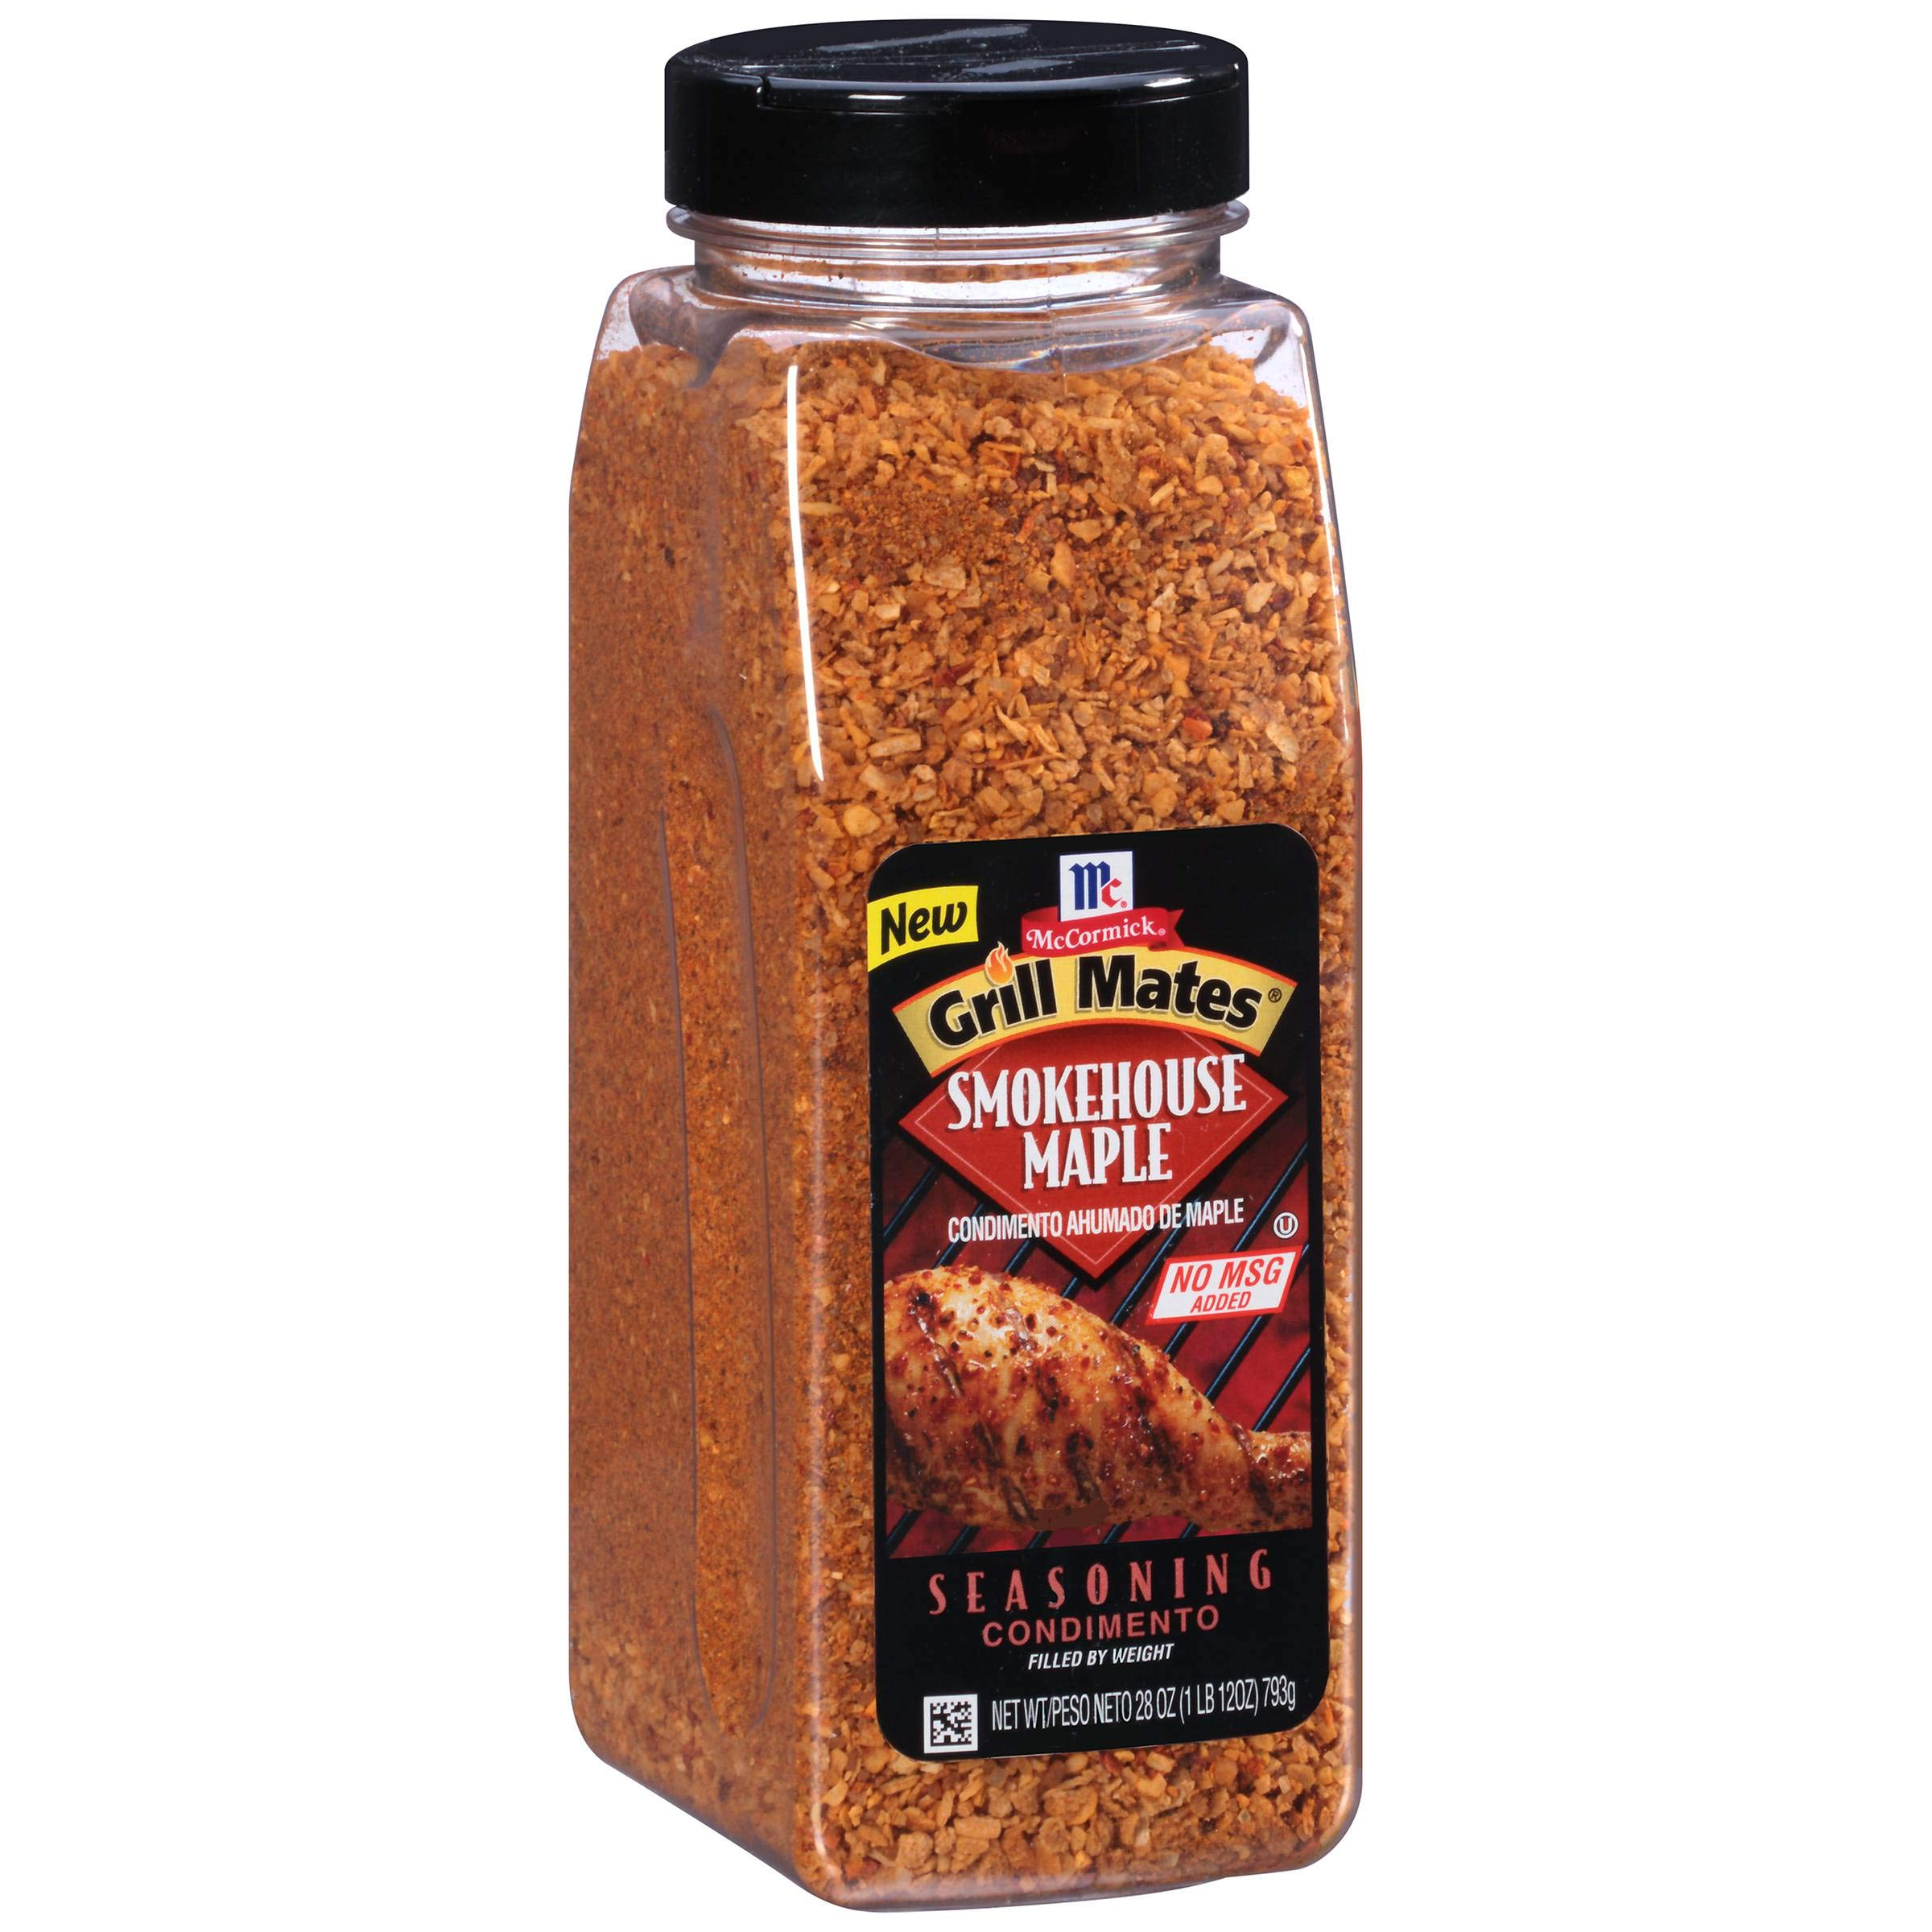 Mccormick Grill Mates Smokehouse Maple Seasoning, 28 Ounce -- 6 per case.